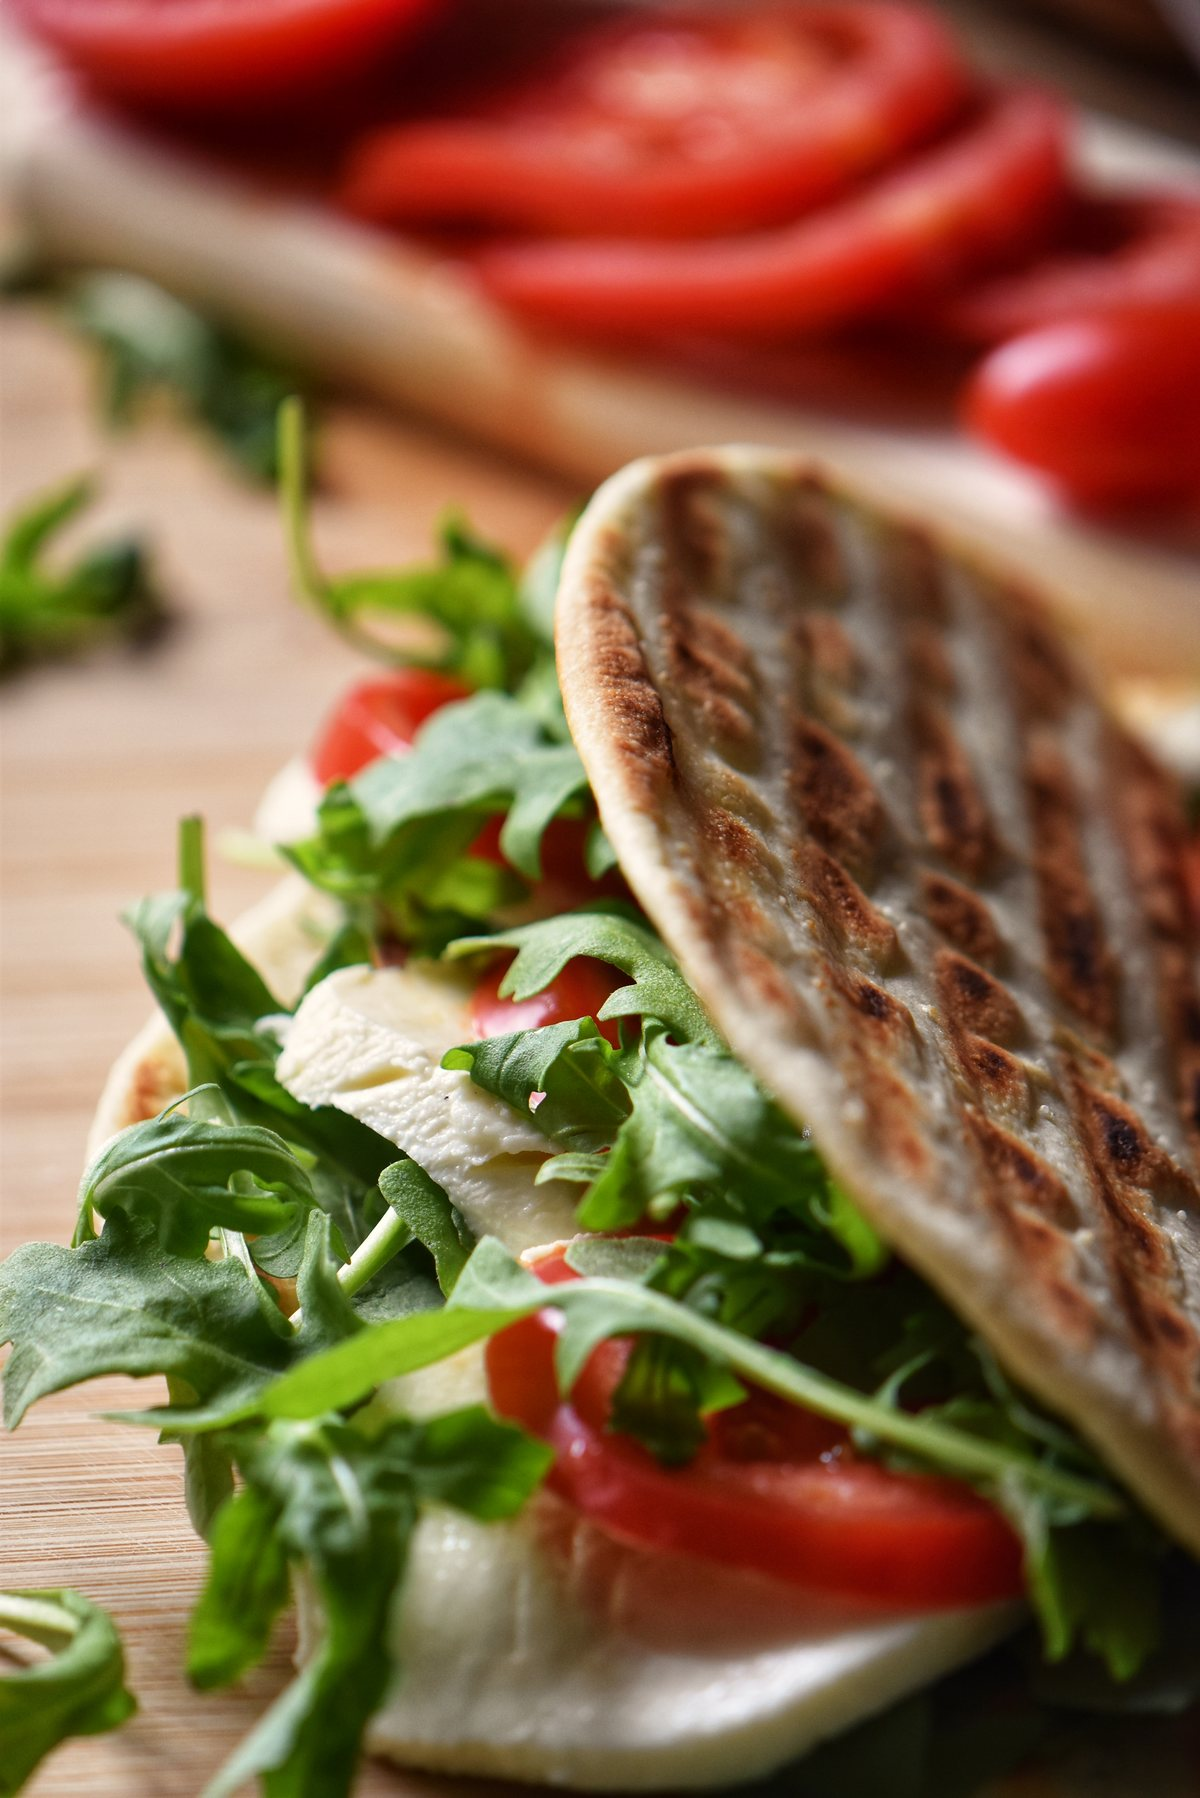 A Vegetarian Piadina Sandwich in a wicker basket.